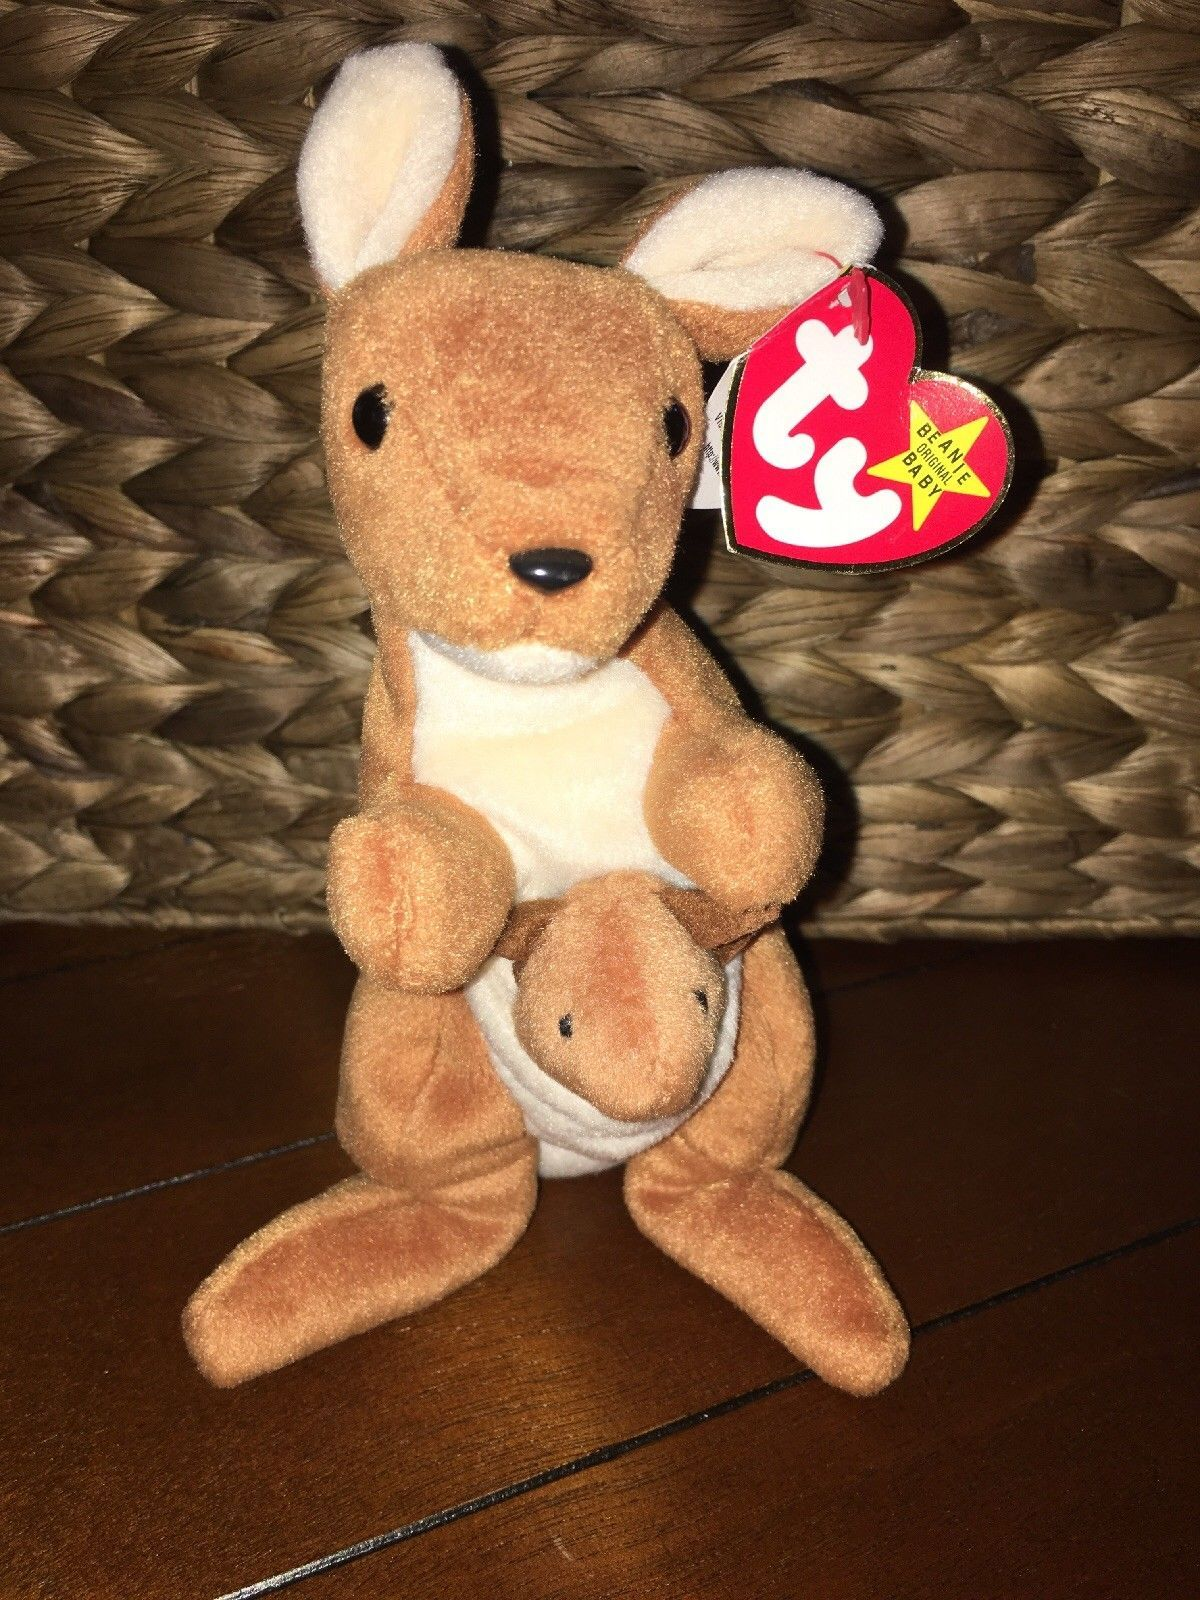 The 20 Expensive Collectible Beanie Babies Will Make You Rich - Most Valuable  Beanie Babies d5a297a08b